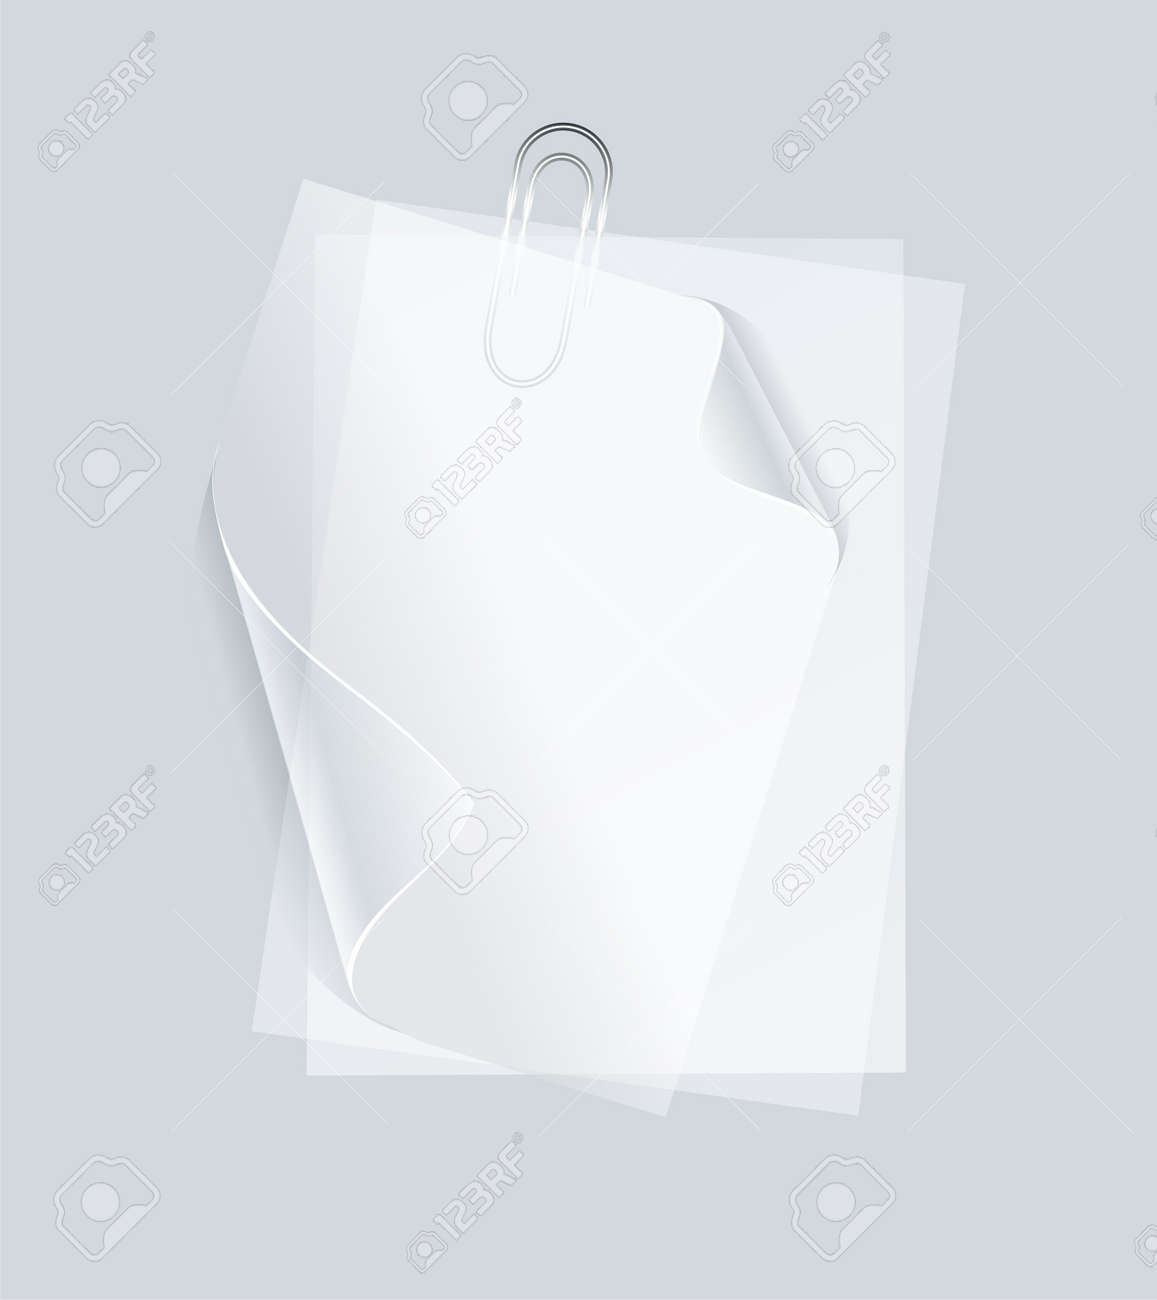 collection of various white note papers or transparent stickers with pins Stock Vector - 11969266